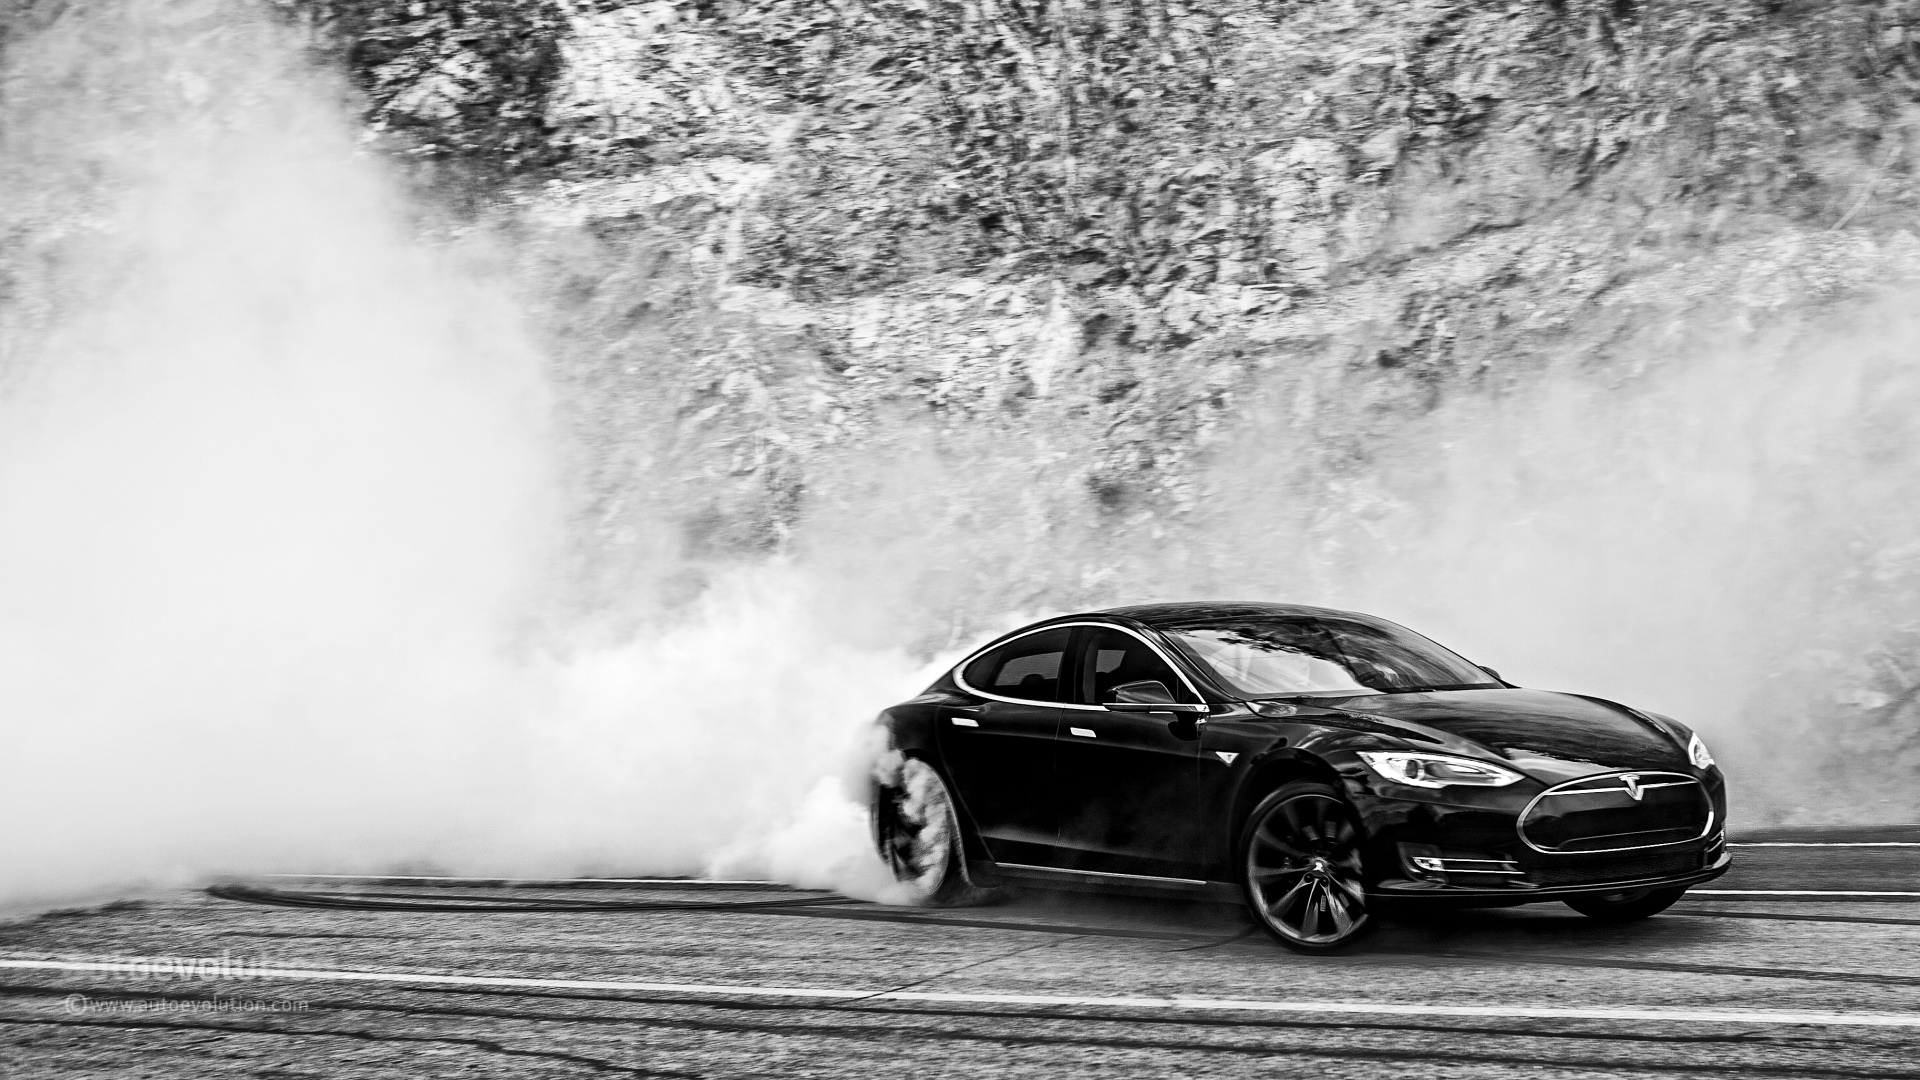 tesla model s wallpapers high quality download free